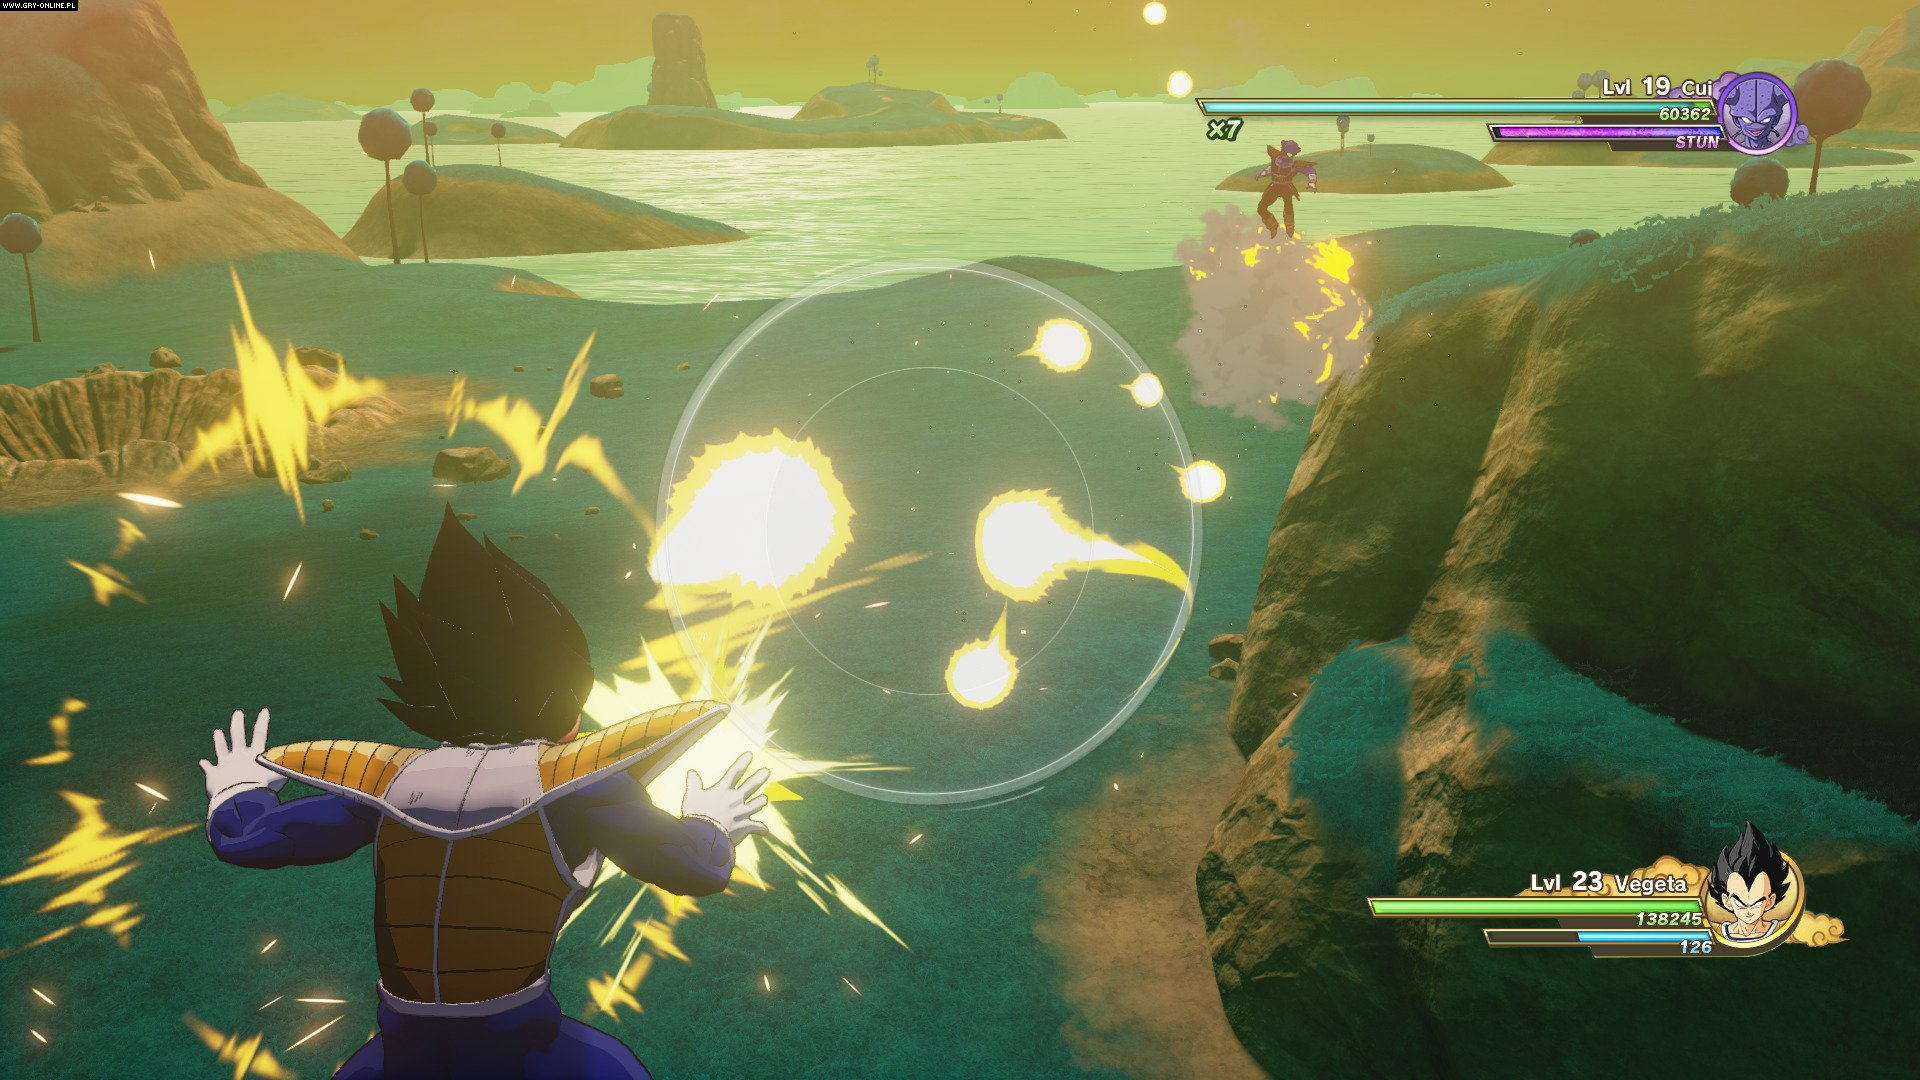 Dragon Ball Z: Kakarot PC, PS4, XONE Games Image 34/68, Cyberconnect2, Bandai Namco Entertainment